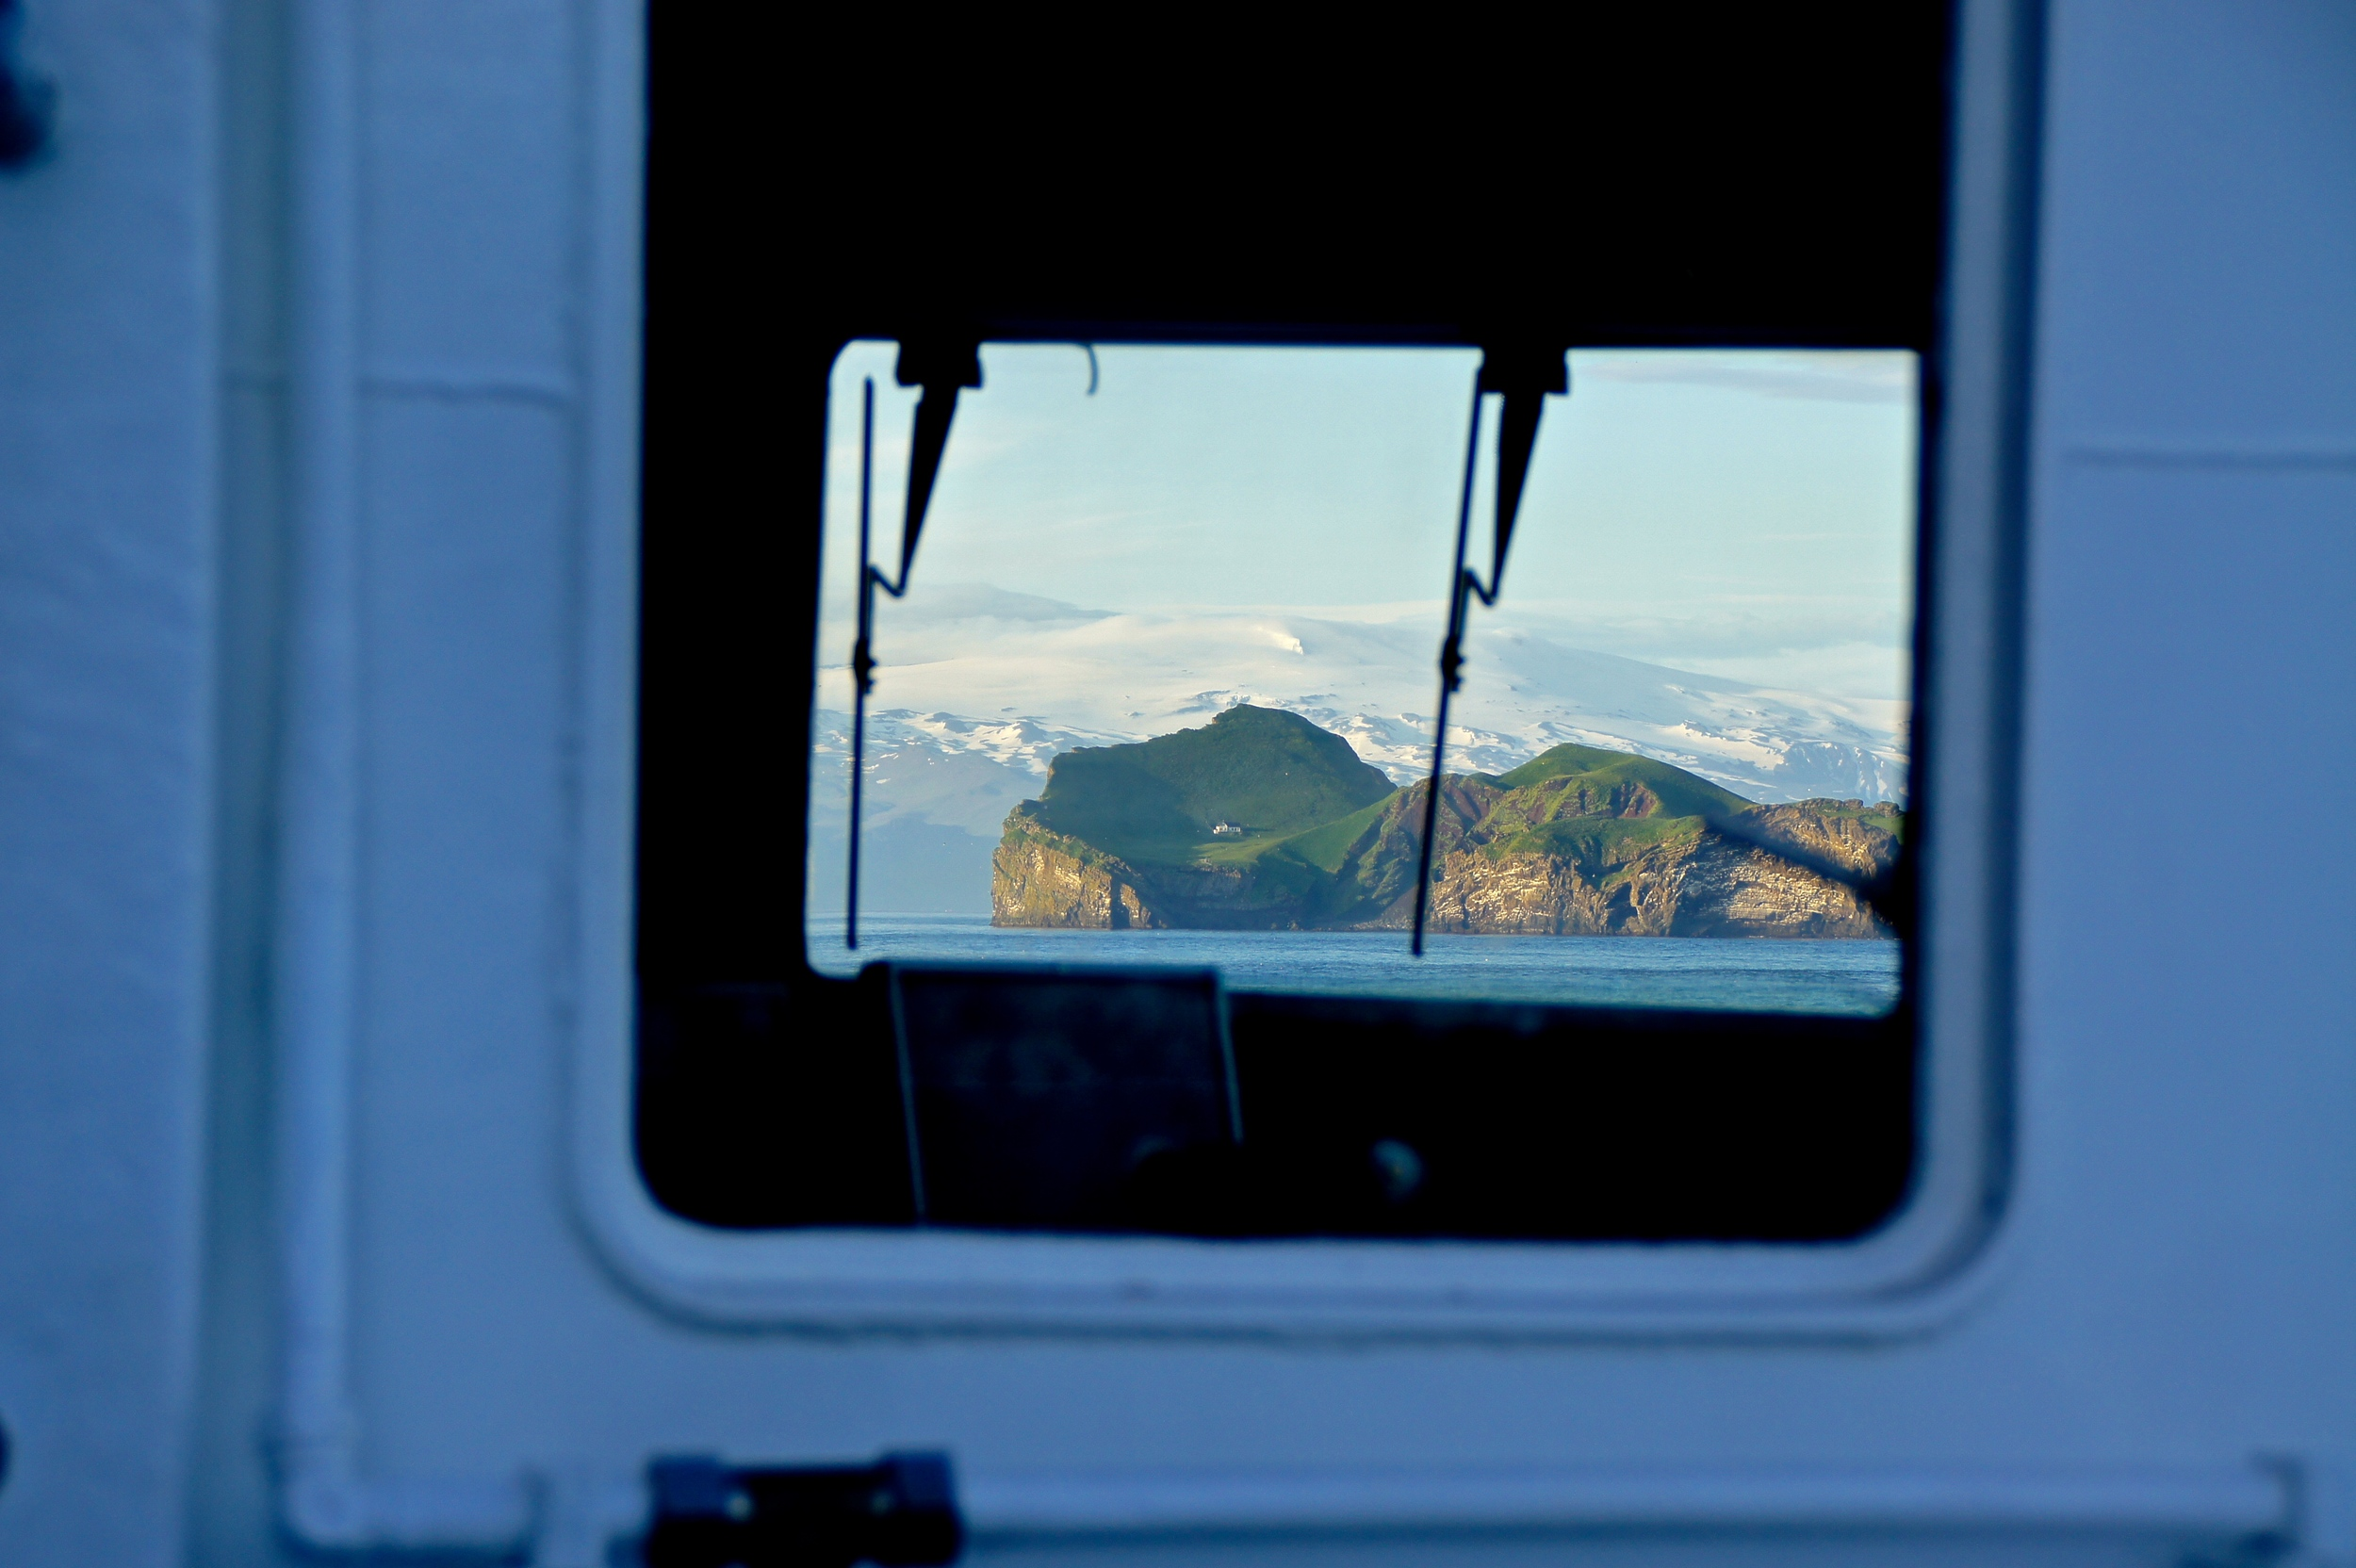 The view of one of the other islands with a hunting lodge on it, as seen through the window of the ferry.